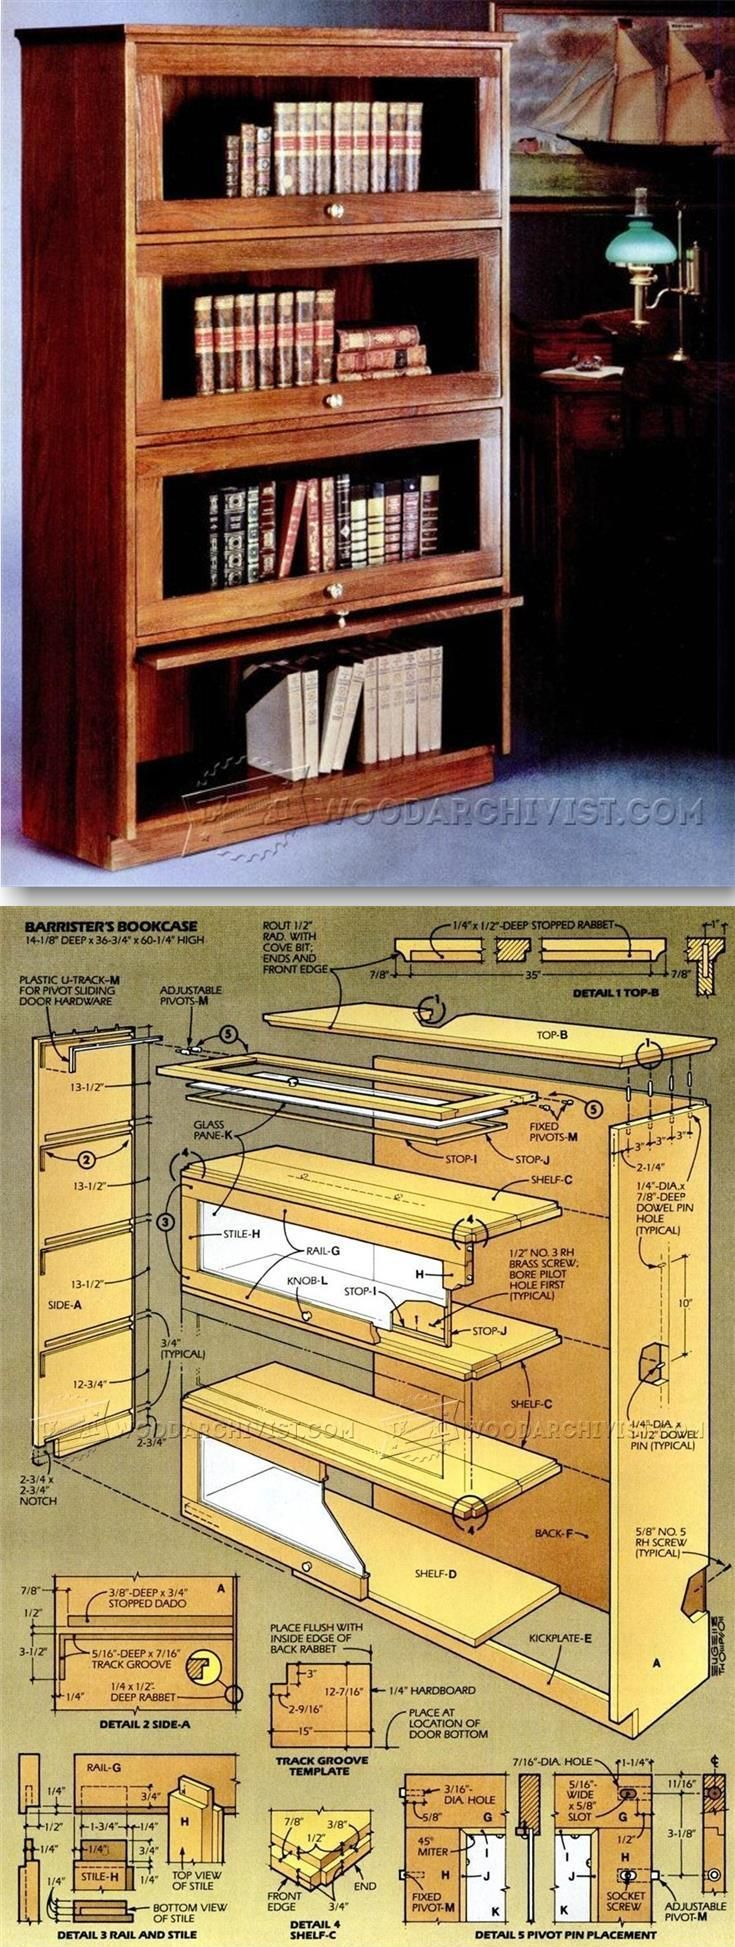 Barristers Bookcase Plans Furniture Plans And Projects Http Woodarchivist Com Woodworking Furniture Plans Bookcase Plans Woodworking Plans Diy